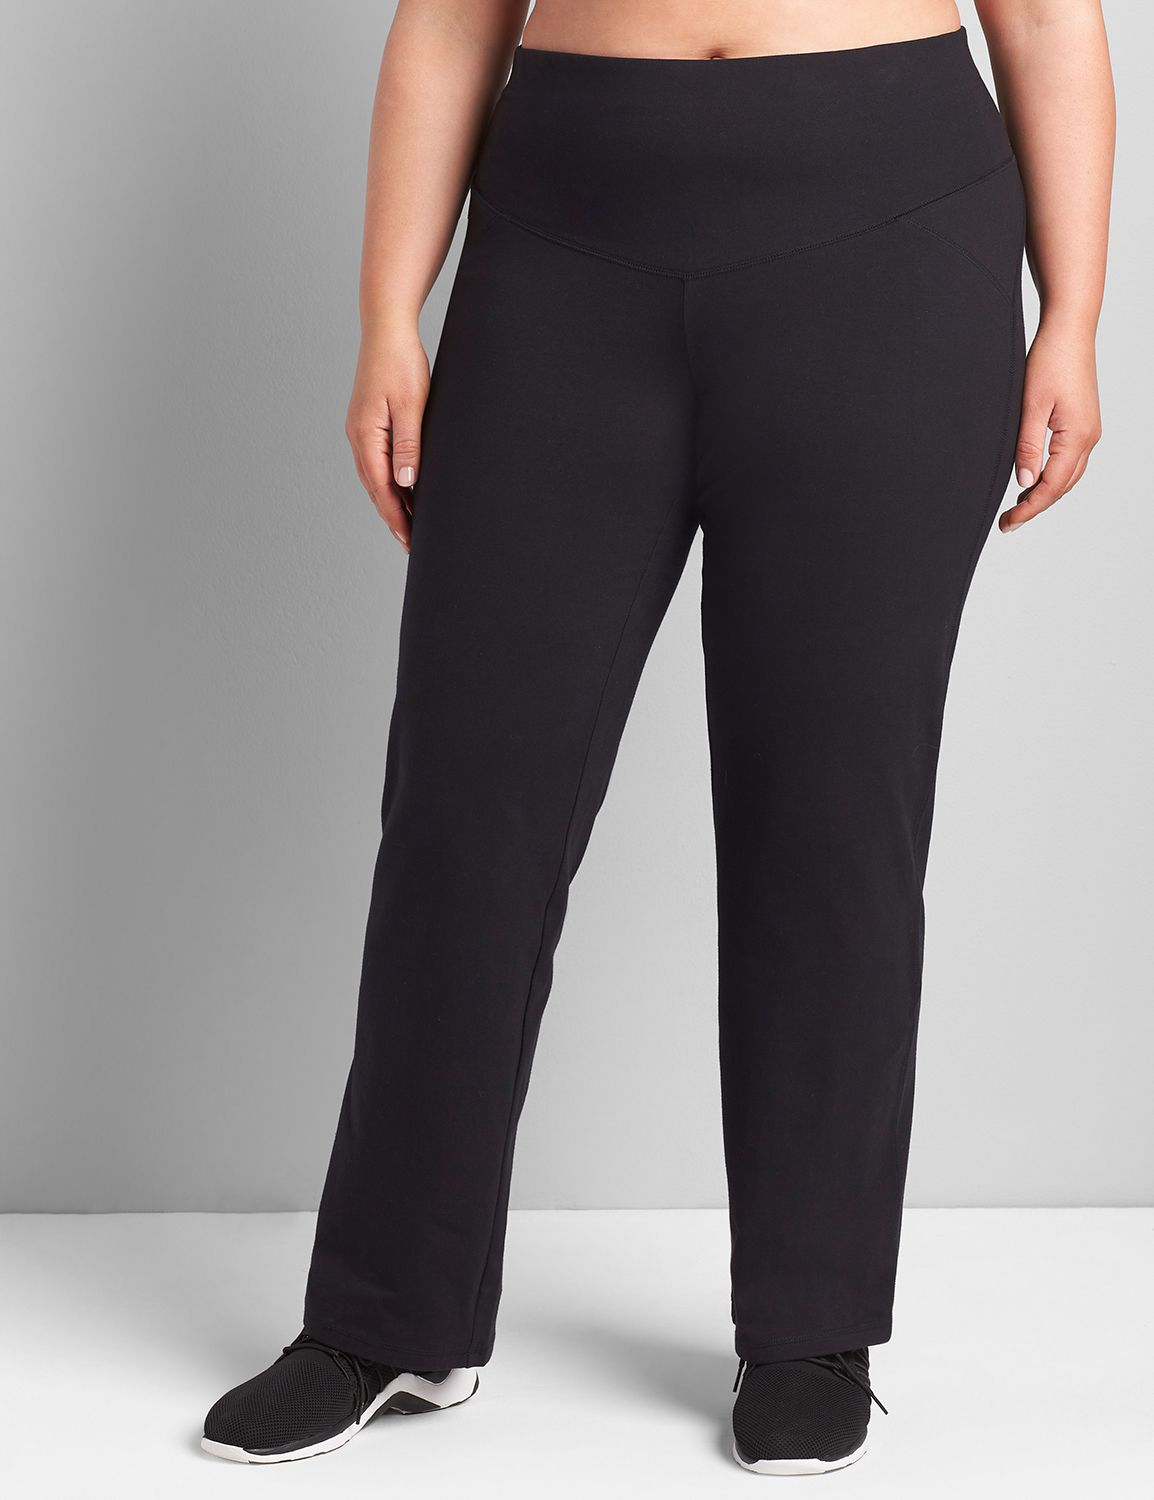 Lane Bryant Womens Control Tech Smoothing Yoga Pant 22/24 Pitch Black